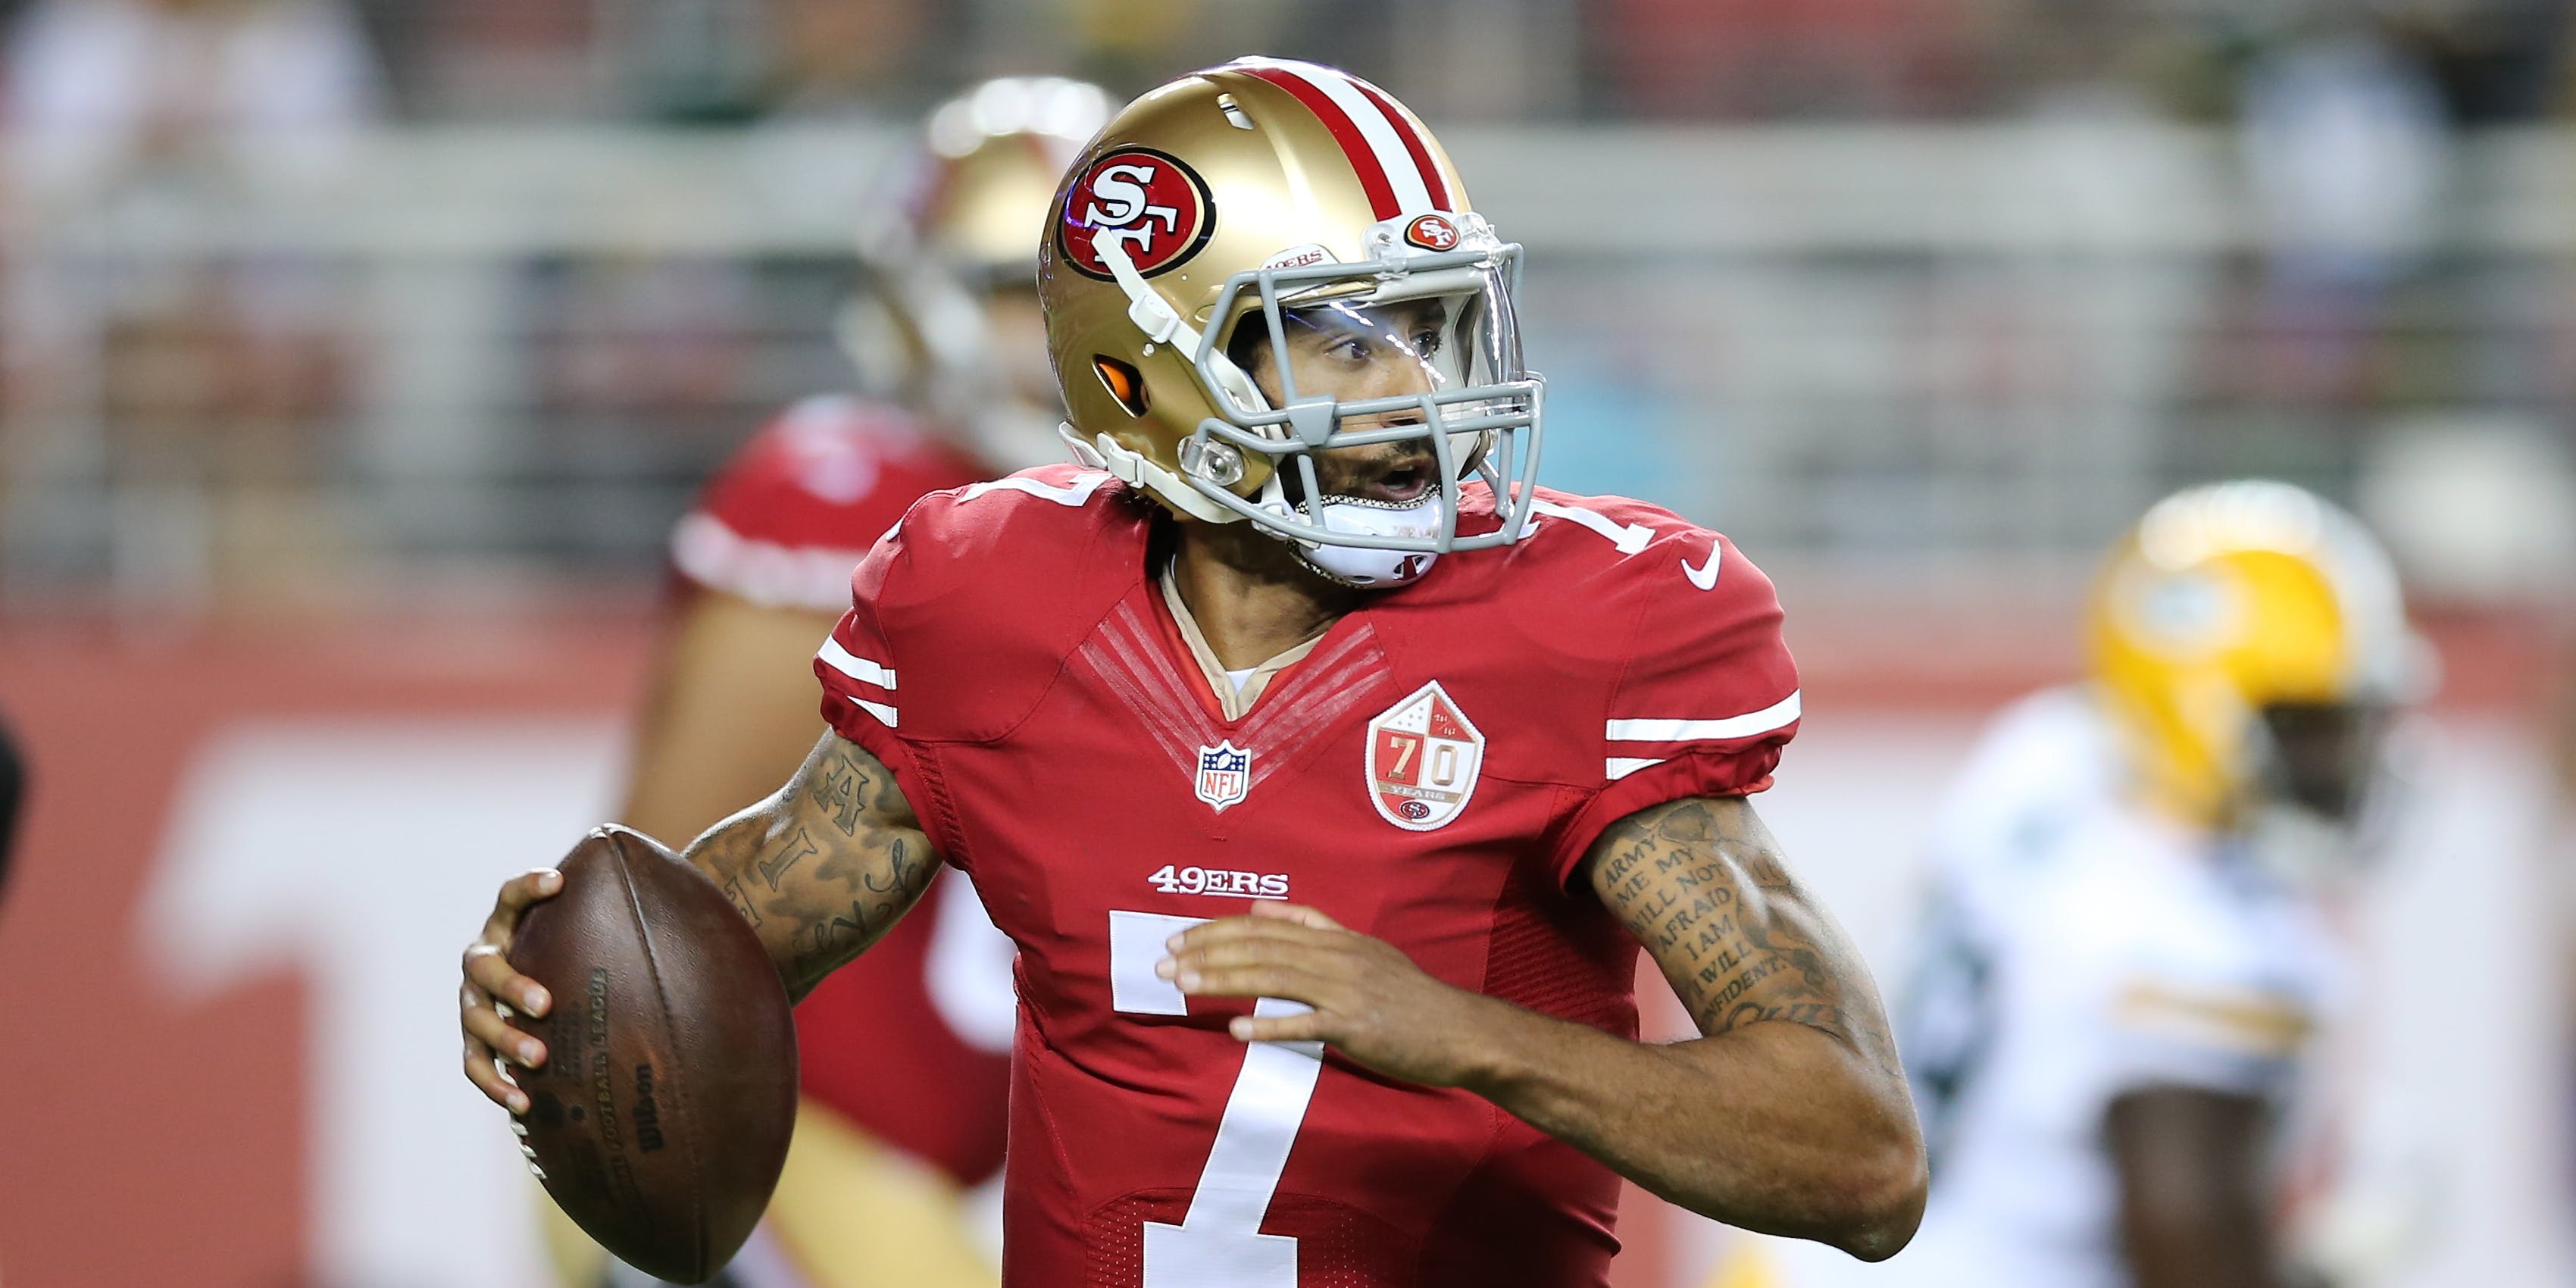 Colin Kaepernick Is Righter Than You Know: The National Anthem Is a Celebration of Slavery